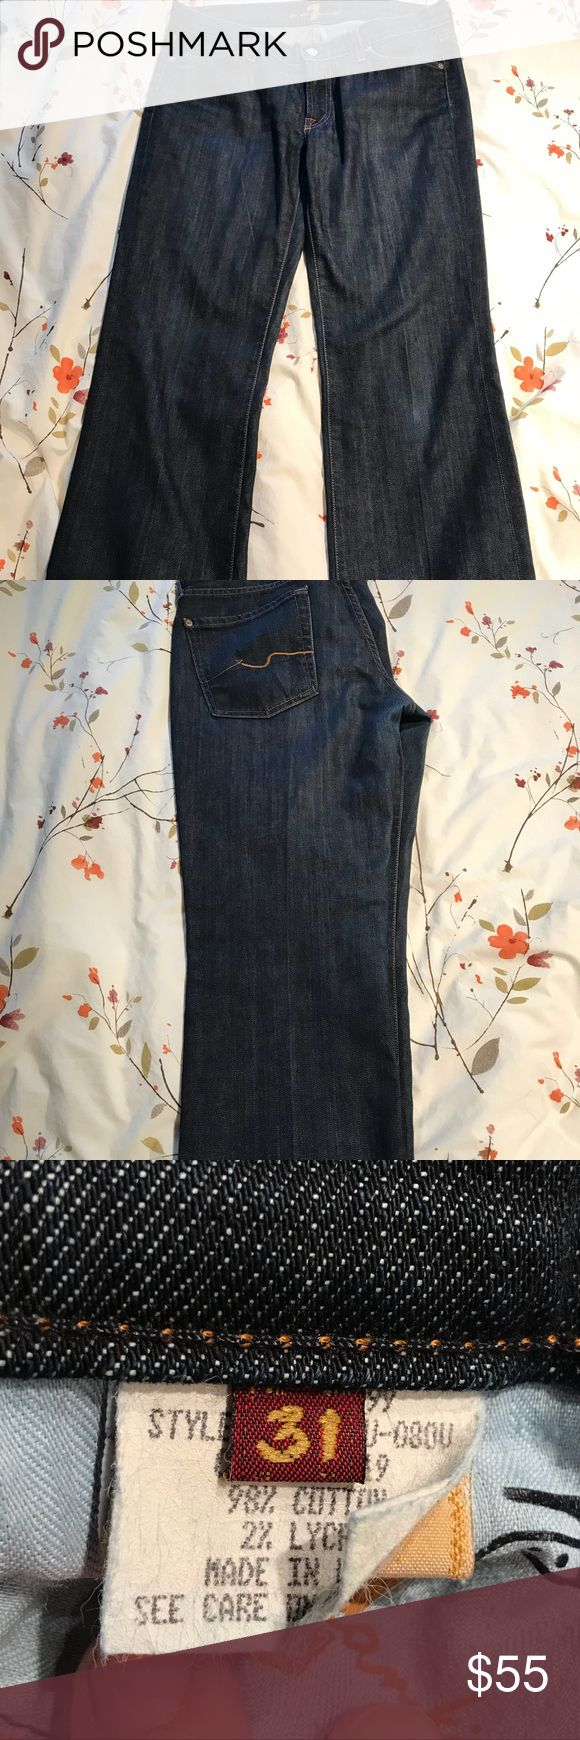 7 For All Mankind Women's jeans👖 Women's dark blue, boot cut jeans. In good condition. 7 For All Mankind Jeans Boot Cut